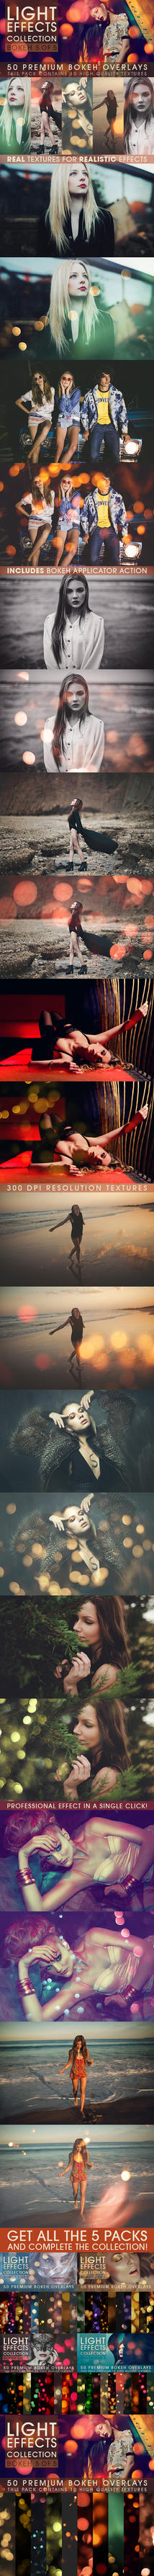 Light Effects Collection BOKEH Vol.5 by LuciferB